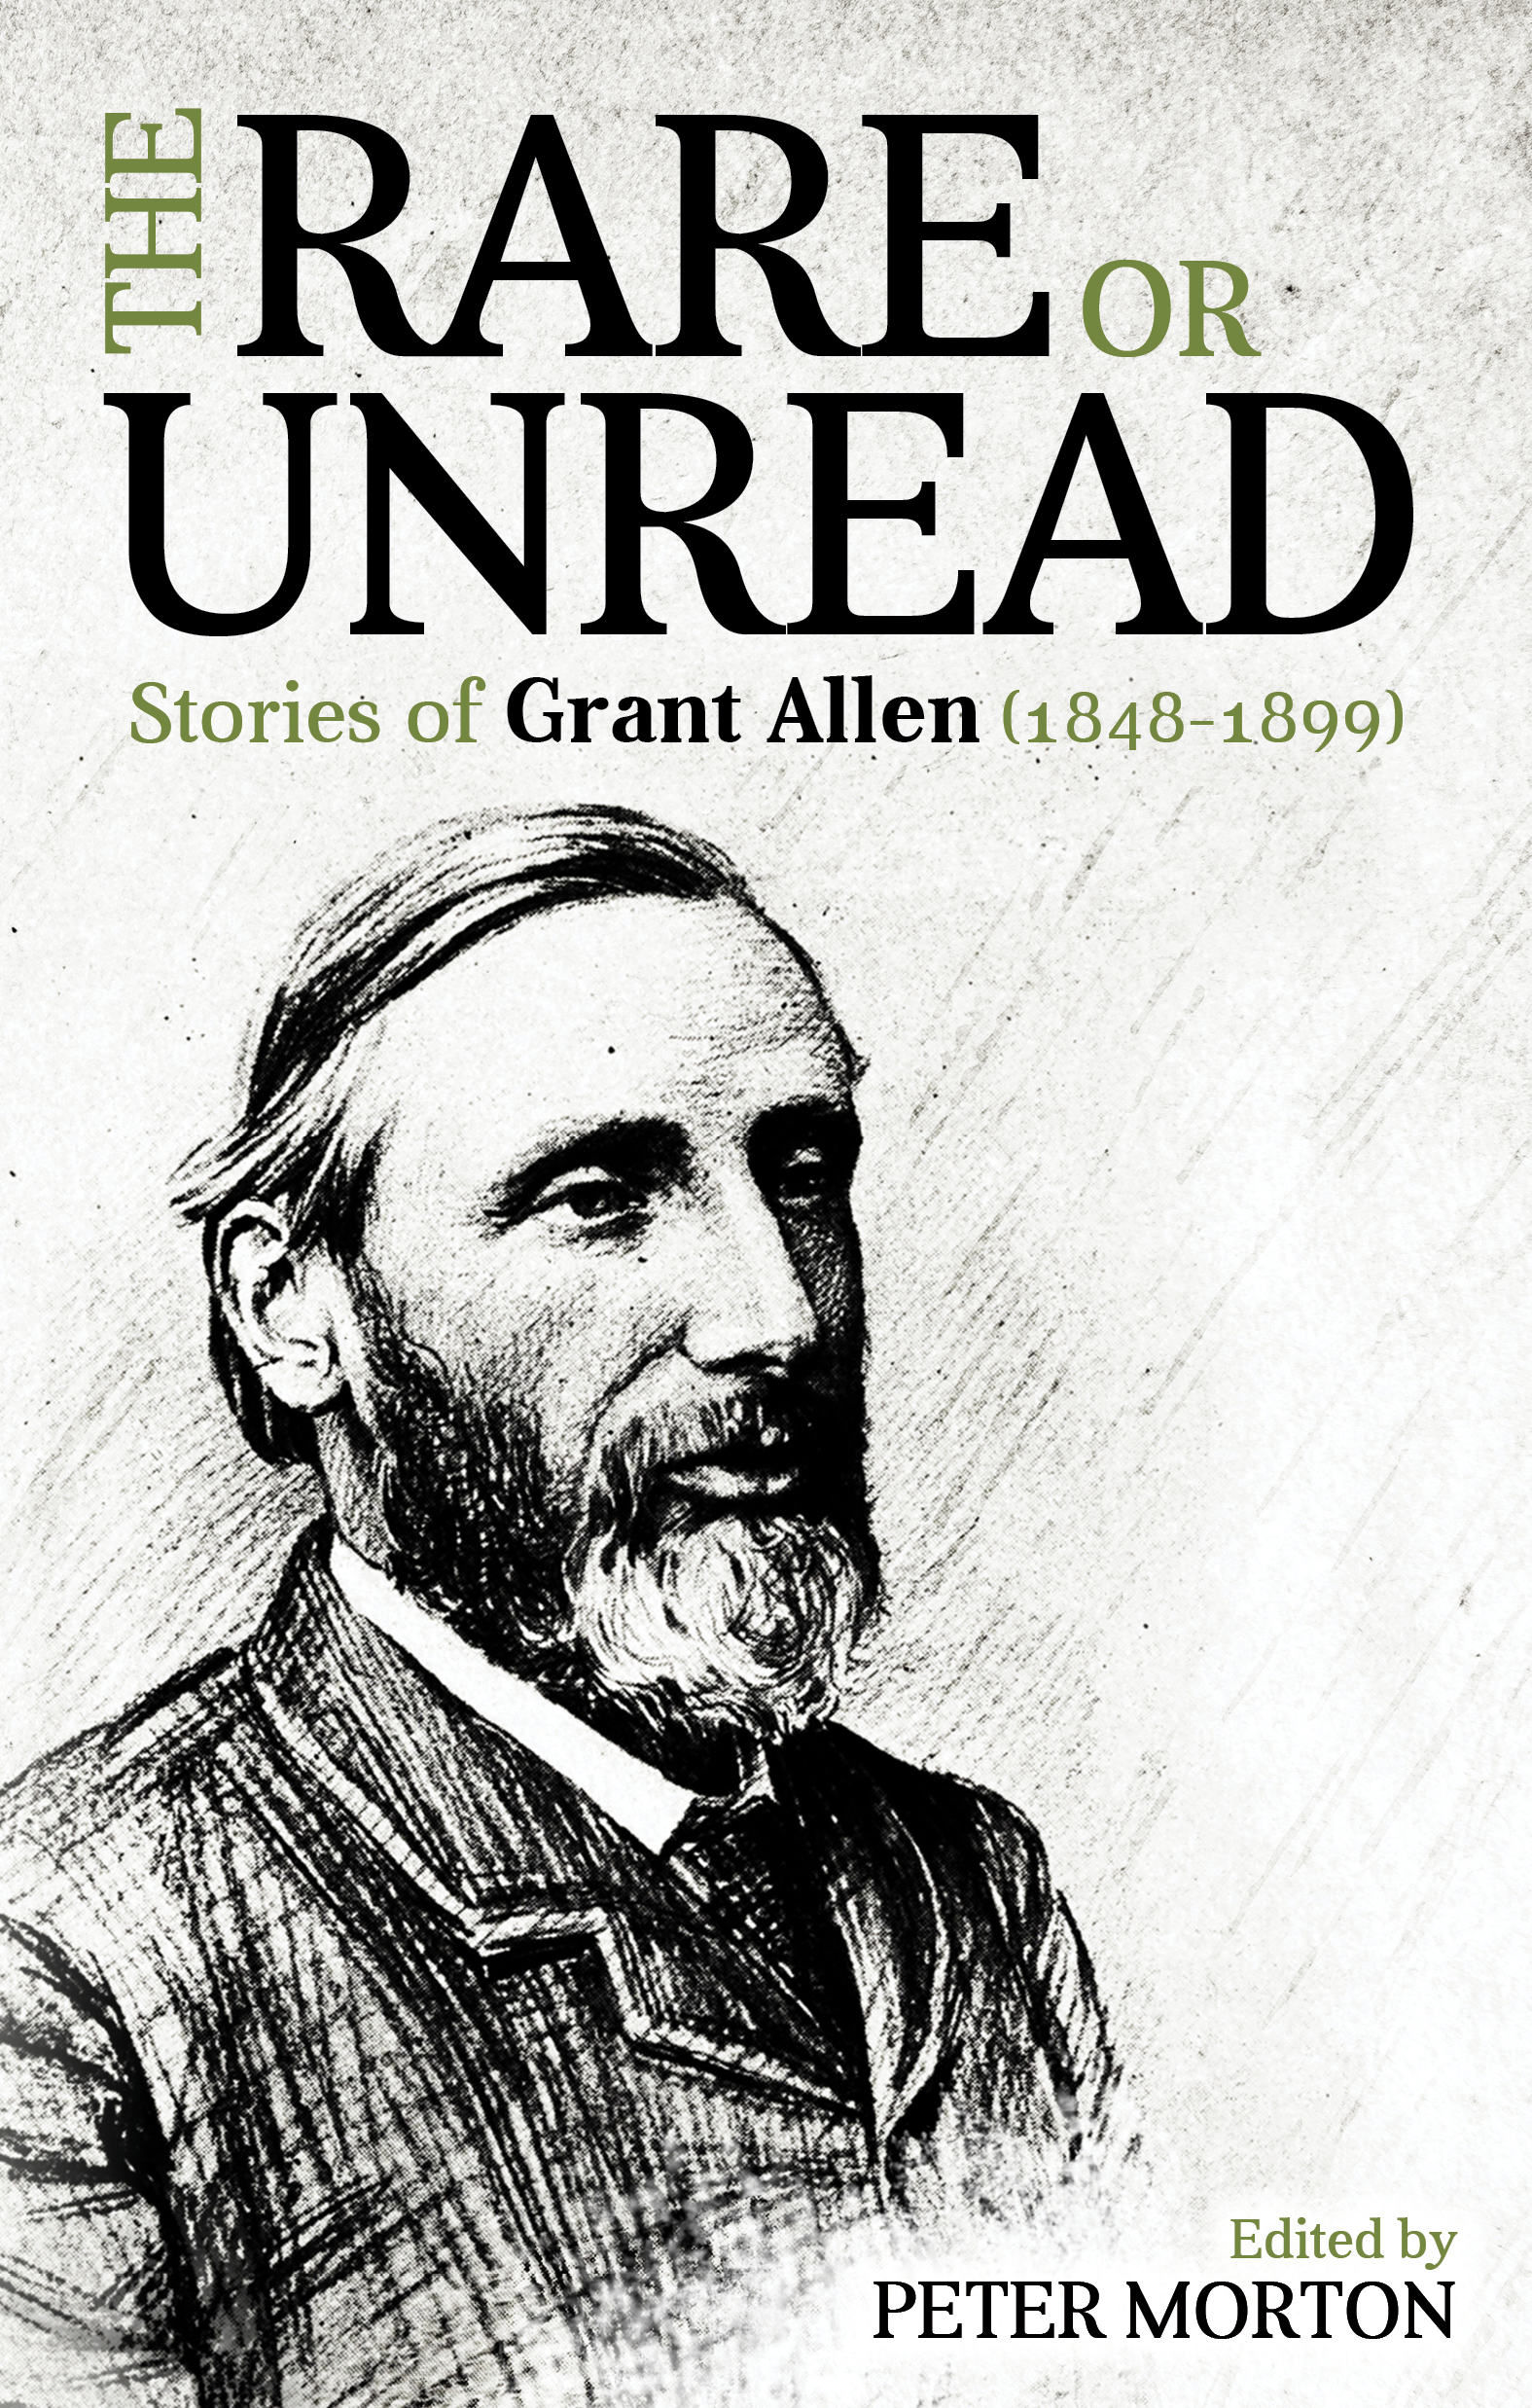 The Rare or Unread - Grant Allen - eBook.jpg